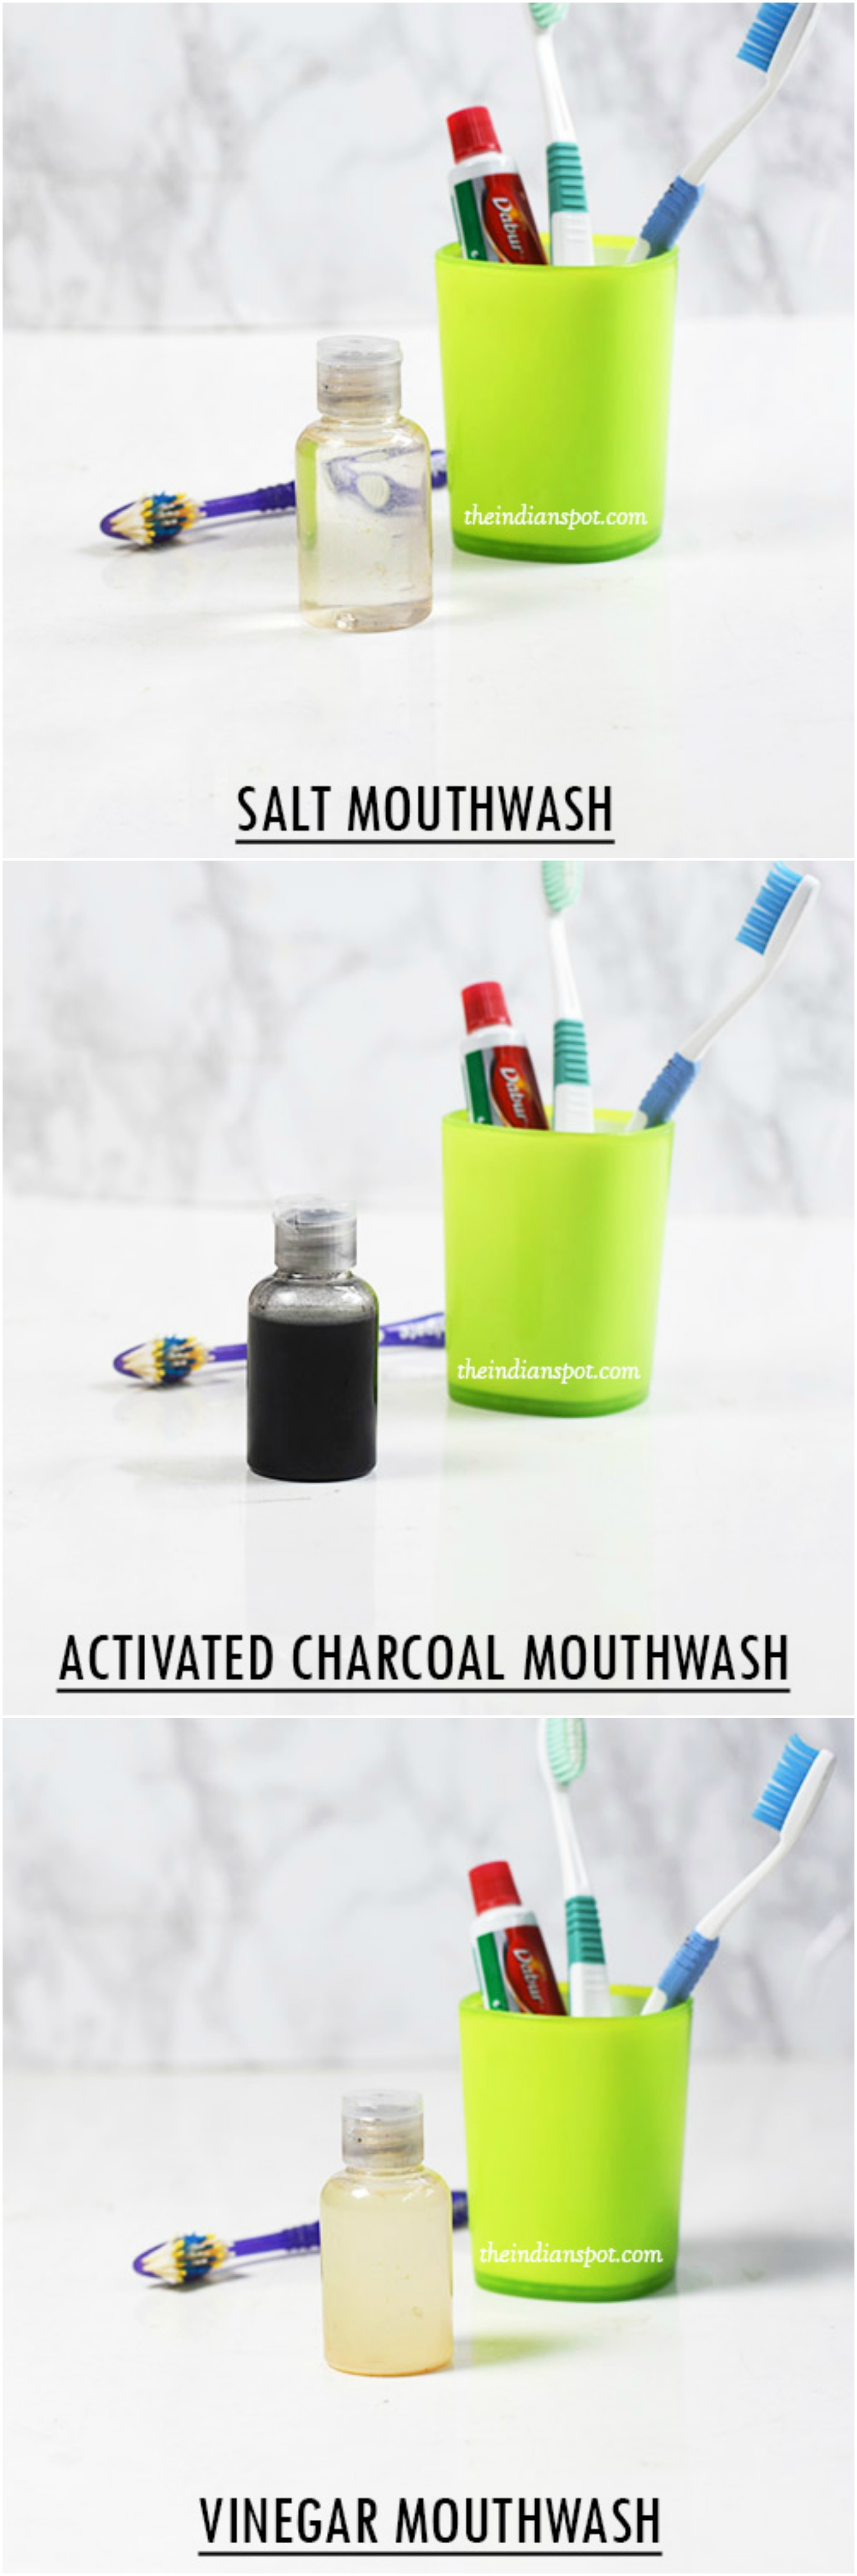 All-Natural Mouthwash recipes to get whiter teeth